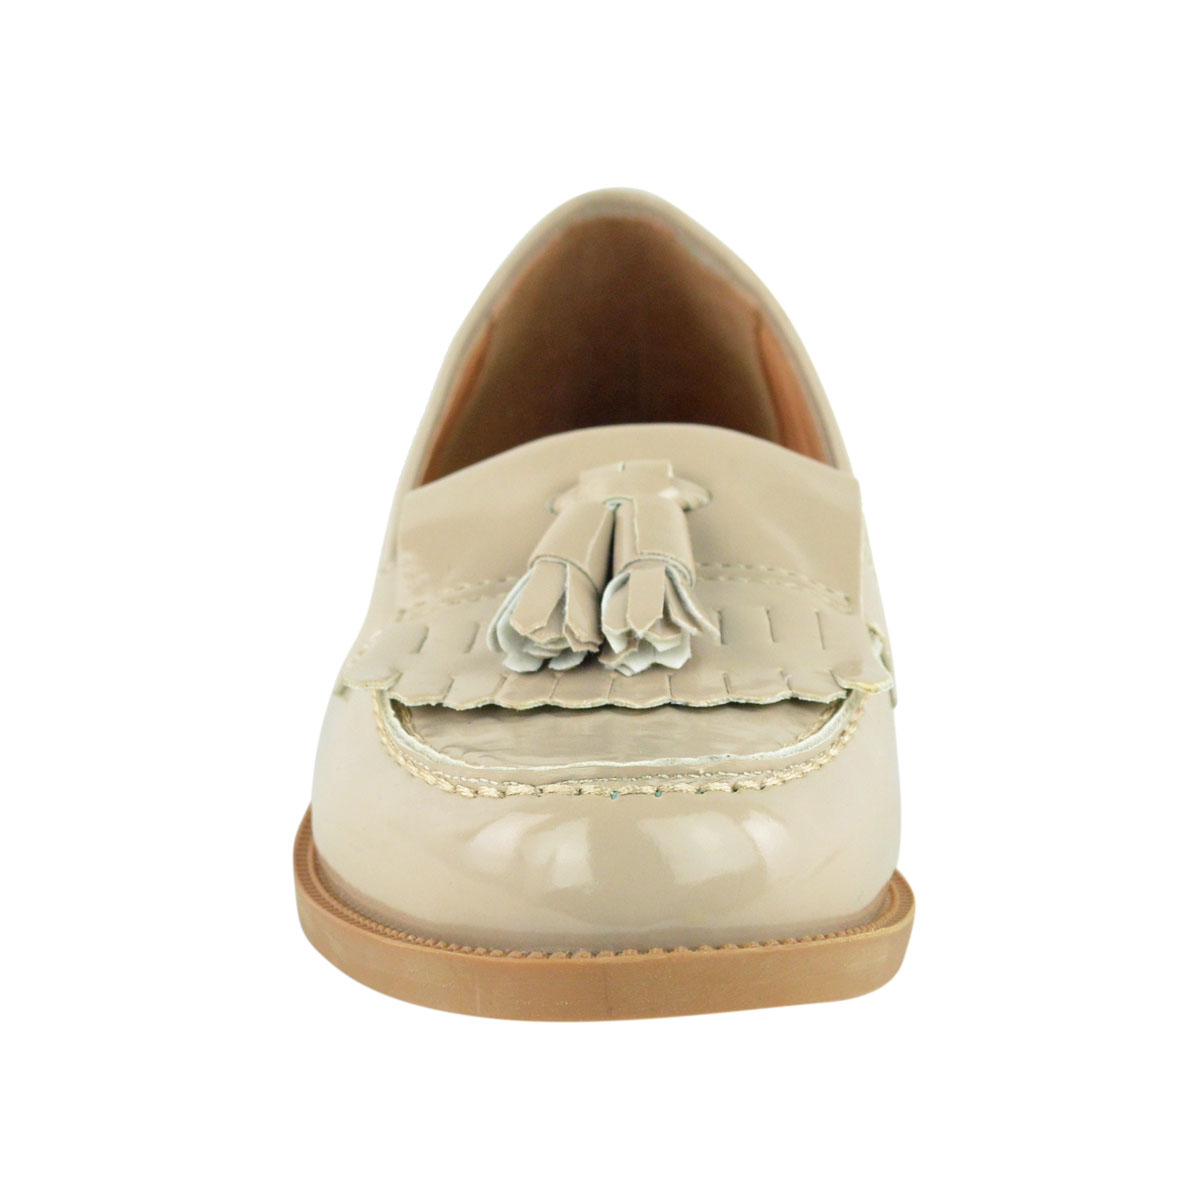 Womens-Ladies-Loafers-Brogues-Pumps-Casual-School-Office-Comfy-Work-Flats-Size thumbnail 25